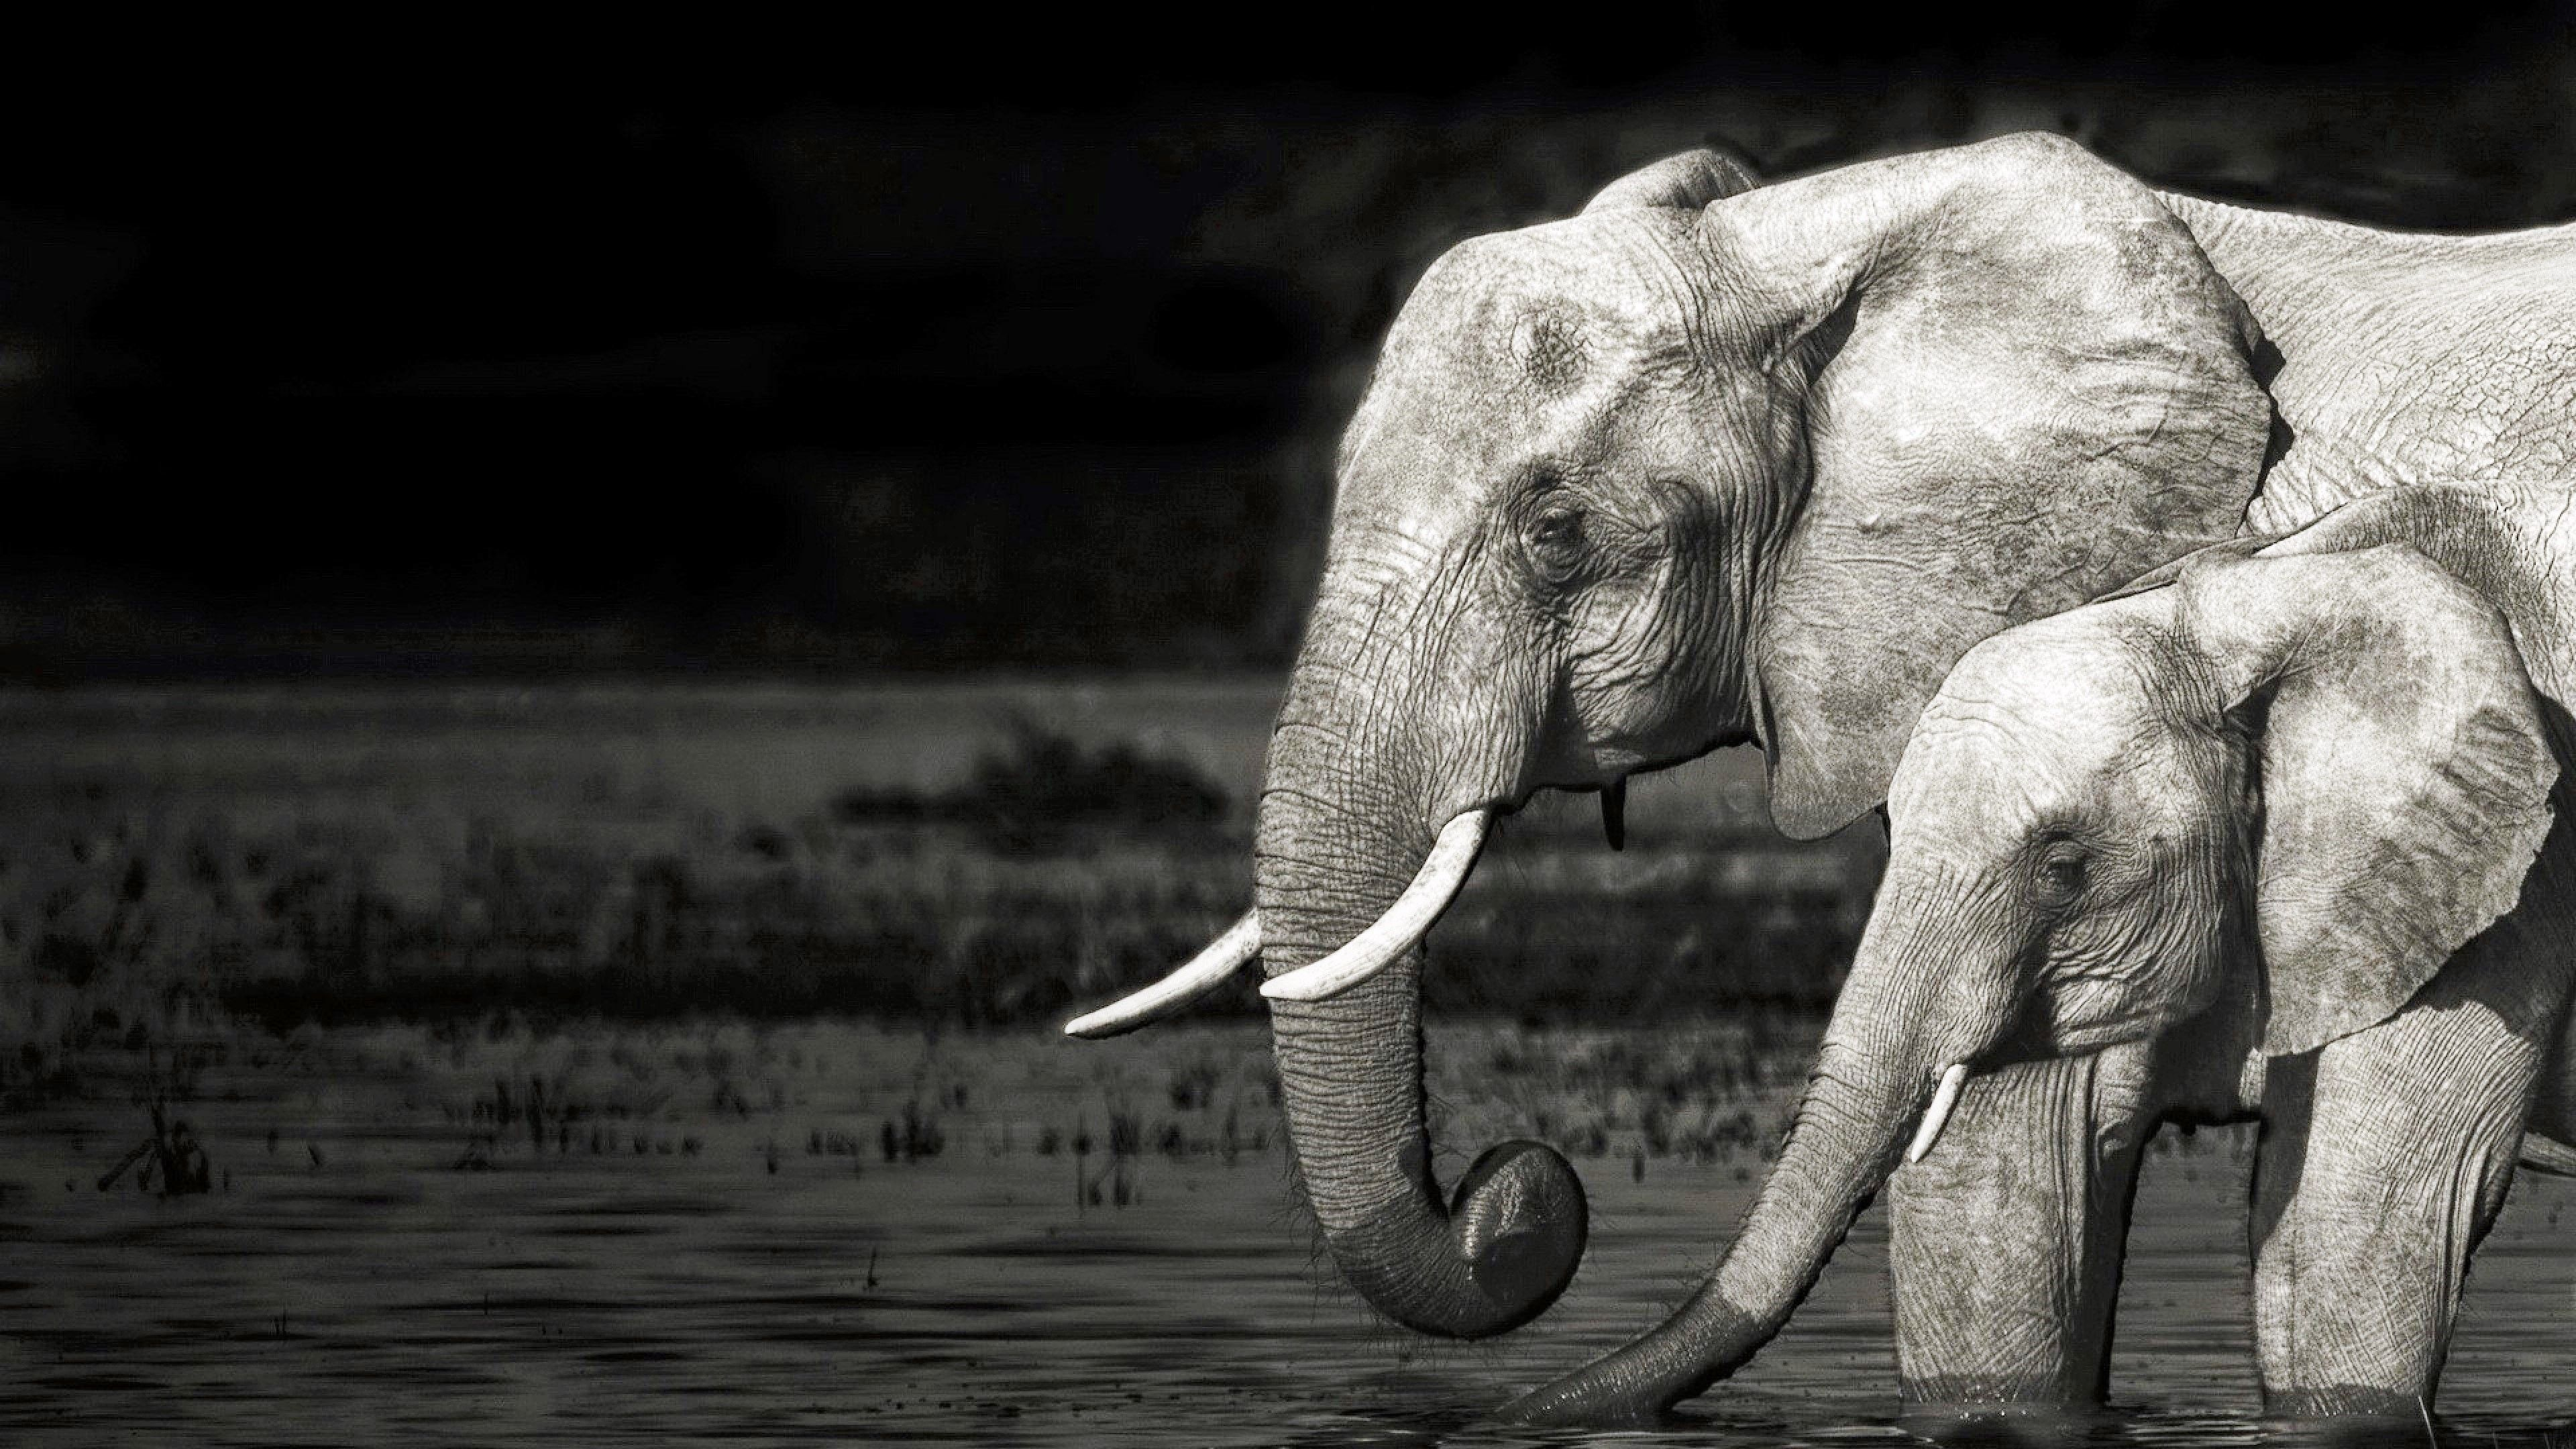 4k Black And White Elephant Elephant Black And White Elephant